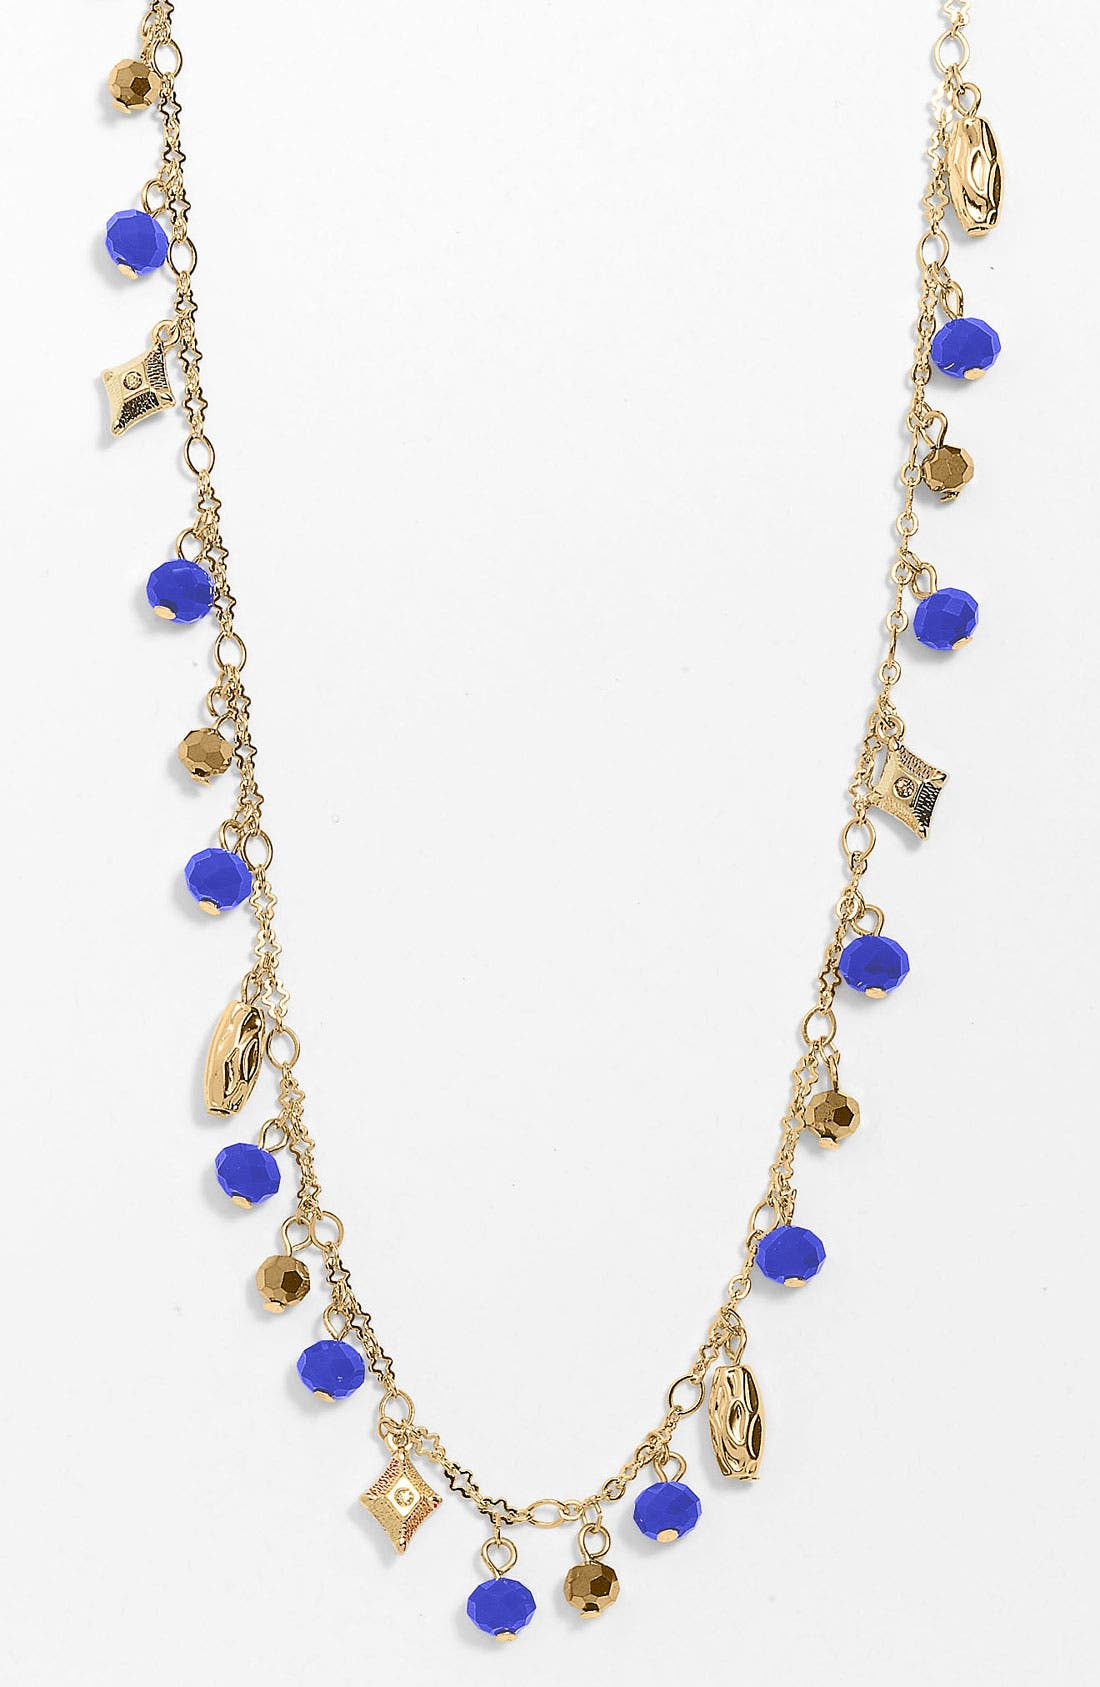 Alternate Image 1 Selected - Nordstrom Long Link Necklace